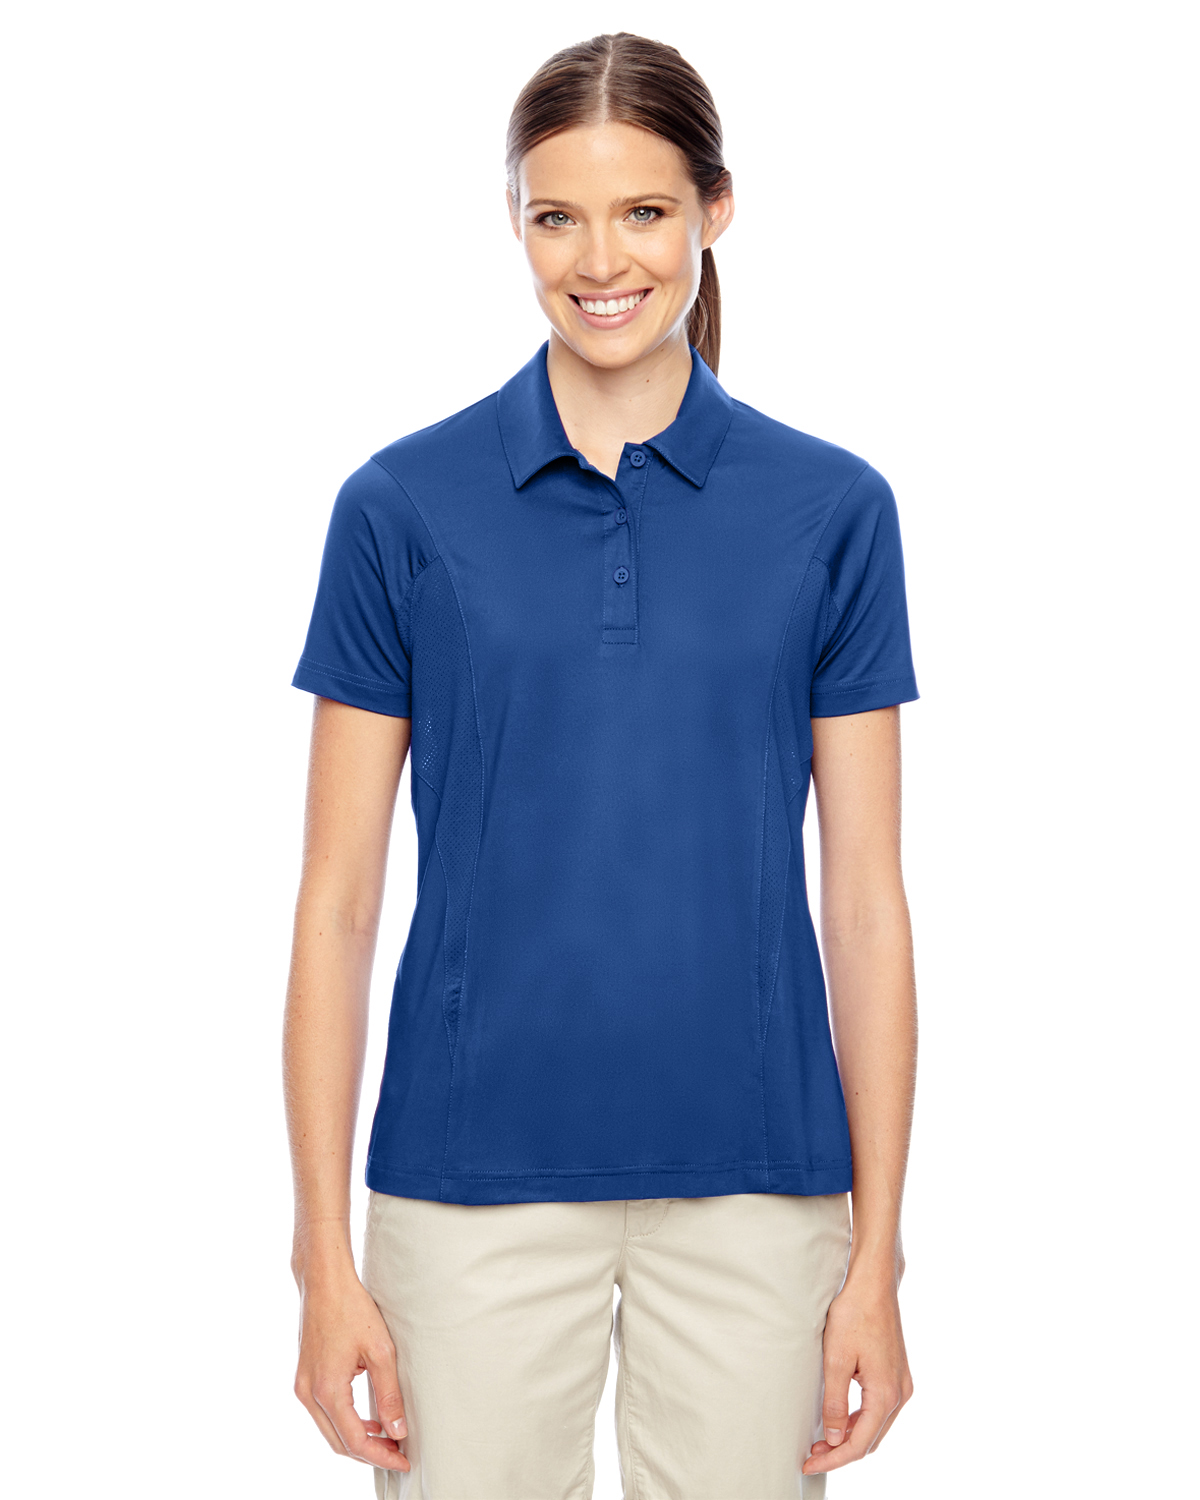 Team 365 TT20W - Ladies' Charger Performance Polo